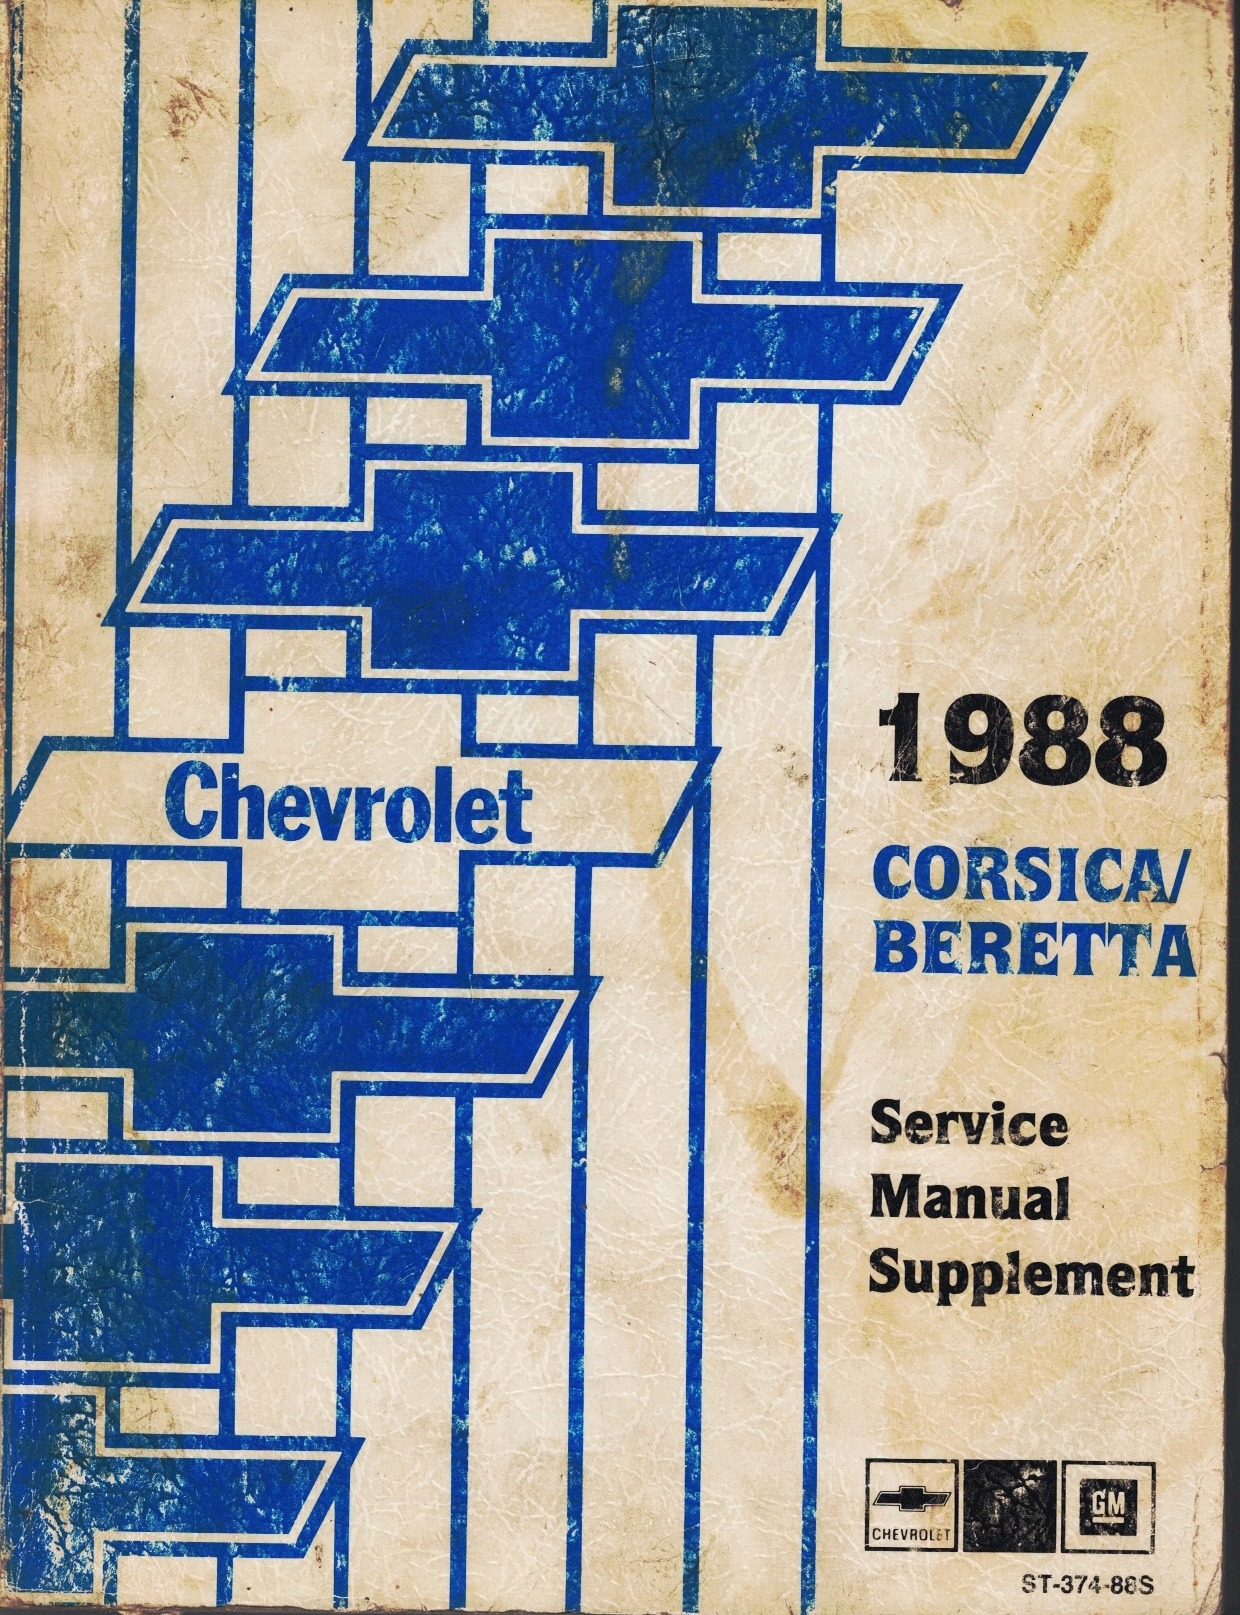 """Image for 1987 / 1988 Chevrolet Corsica / Beretta Service Manual - 3 Volume Set; includes the """"1987/1988 Service Manual"""", the """"1988 Service Manual Supplement"""", and the """"1988 Electrical Diagnosis Service Manual Supplement"""""""